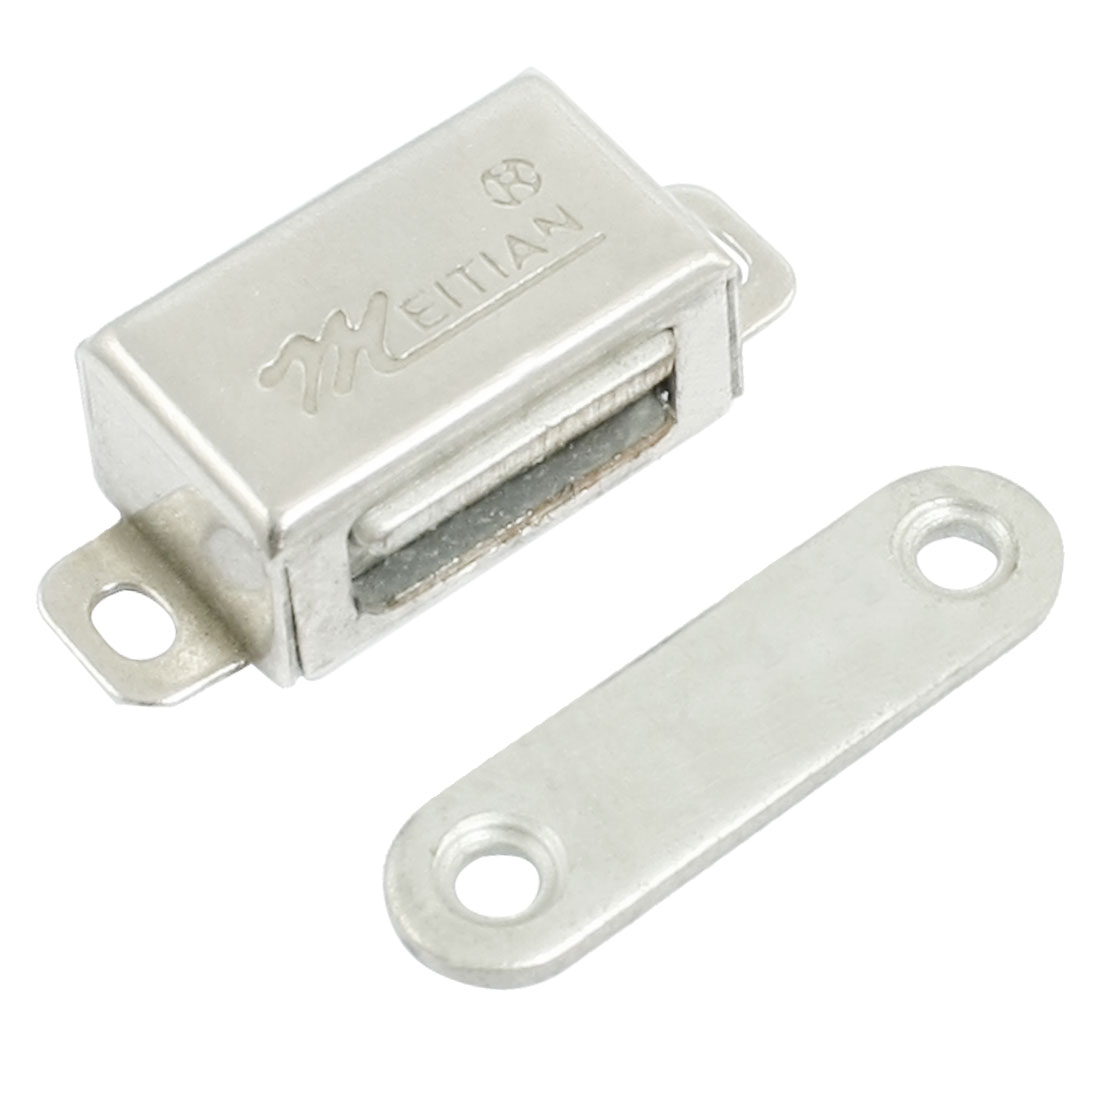 "1.2"" Length Silver Tone Single Magnetic Catch for Cupboard"